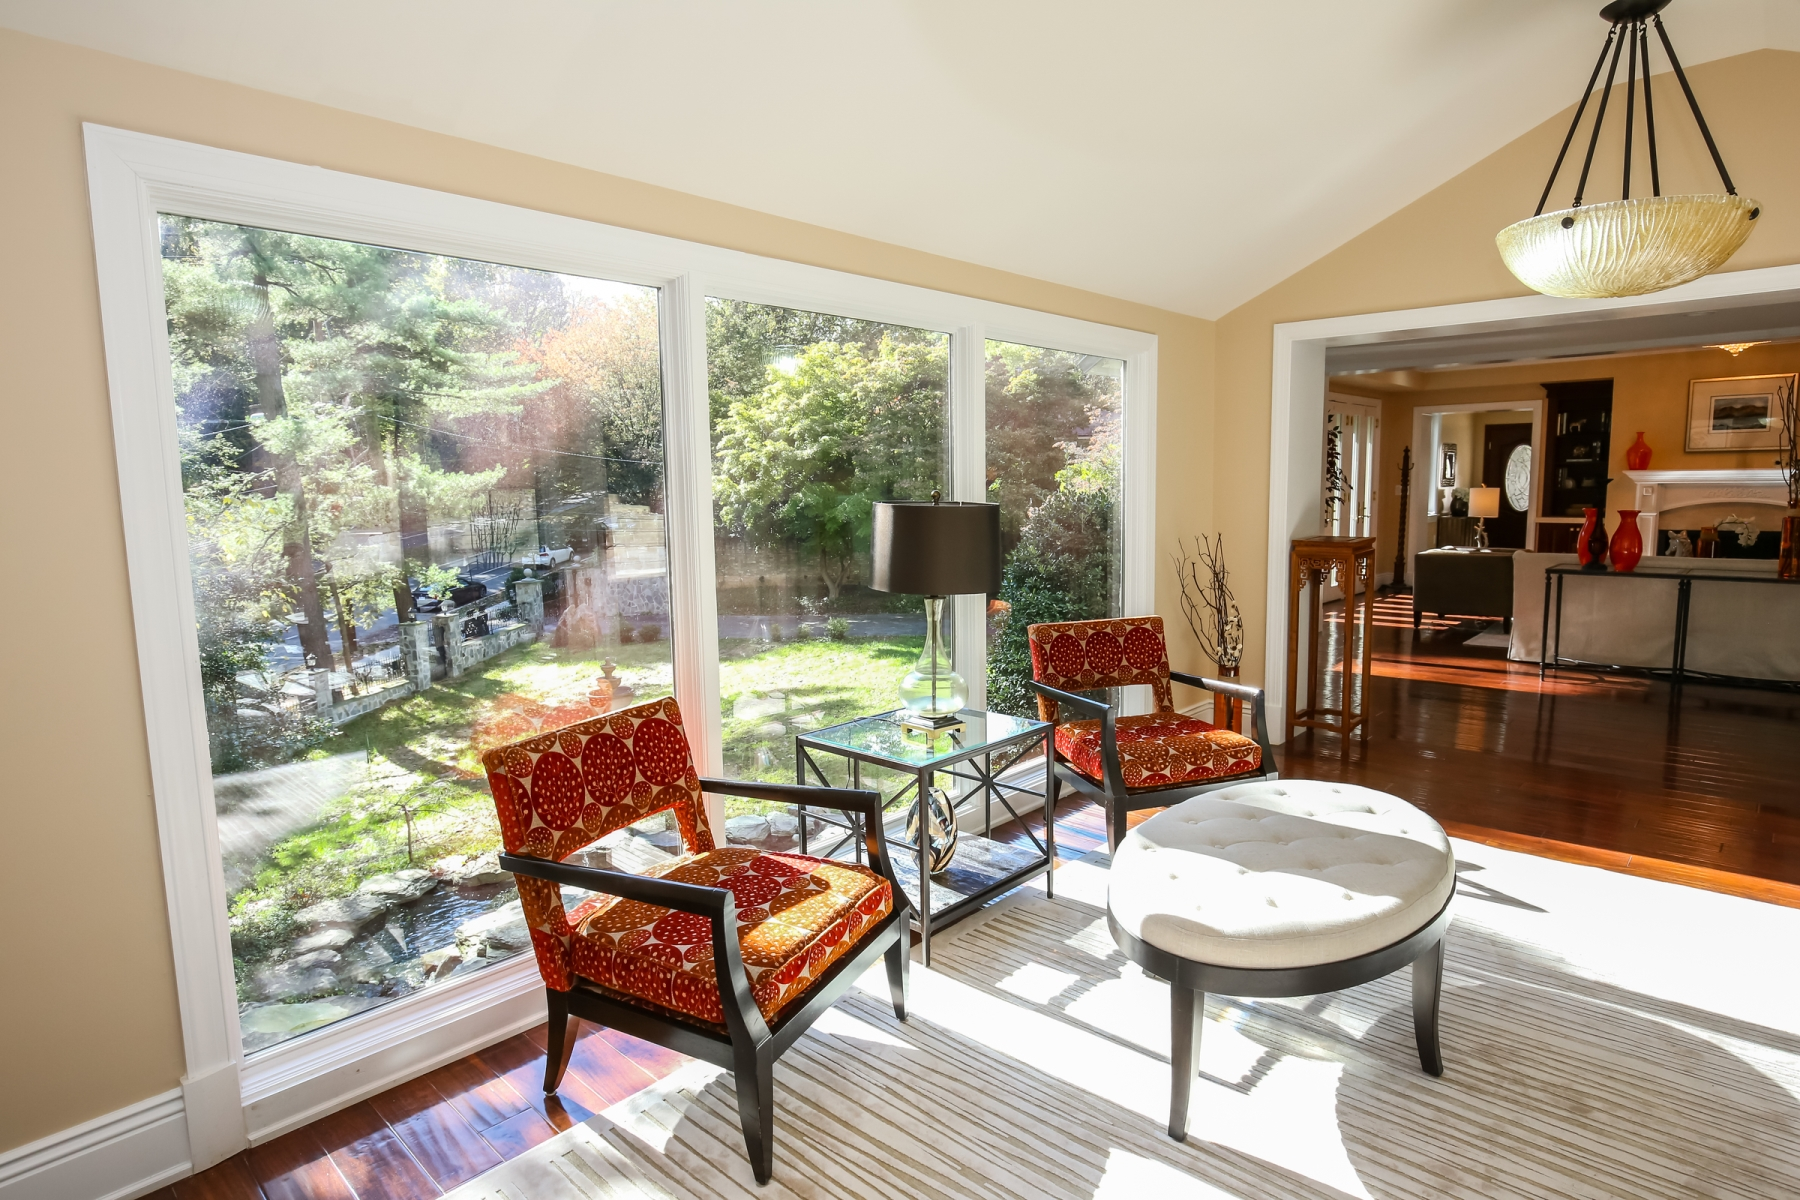 Additional photo for property listing at Forest Hills 2829 Tilden Street Nw Washington, District Of Columbia 20008 Verenigde Staten